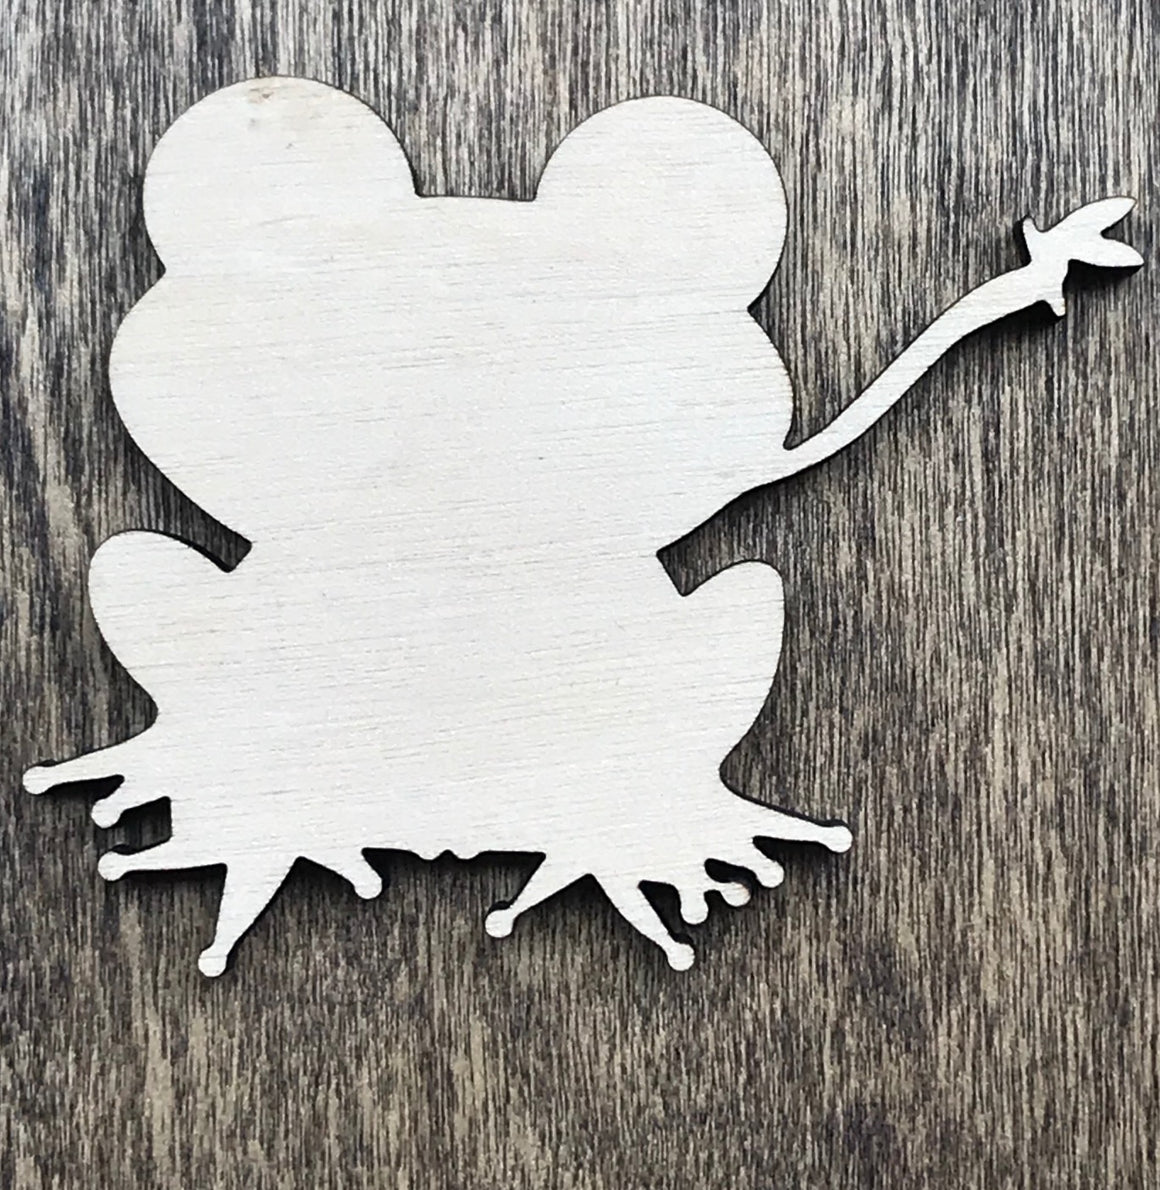 Frog Catching a Fly - Unfinished Wood Blank